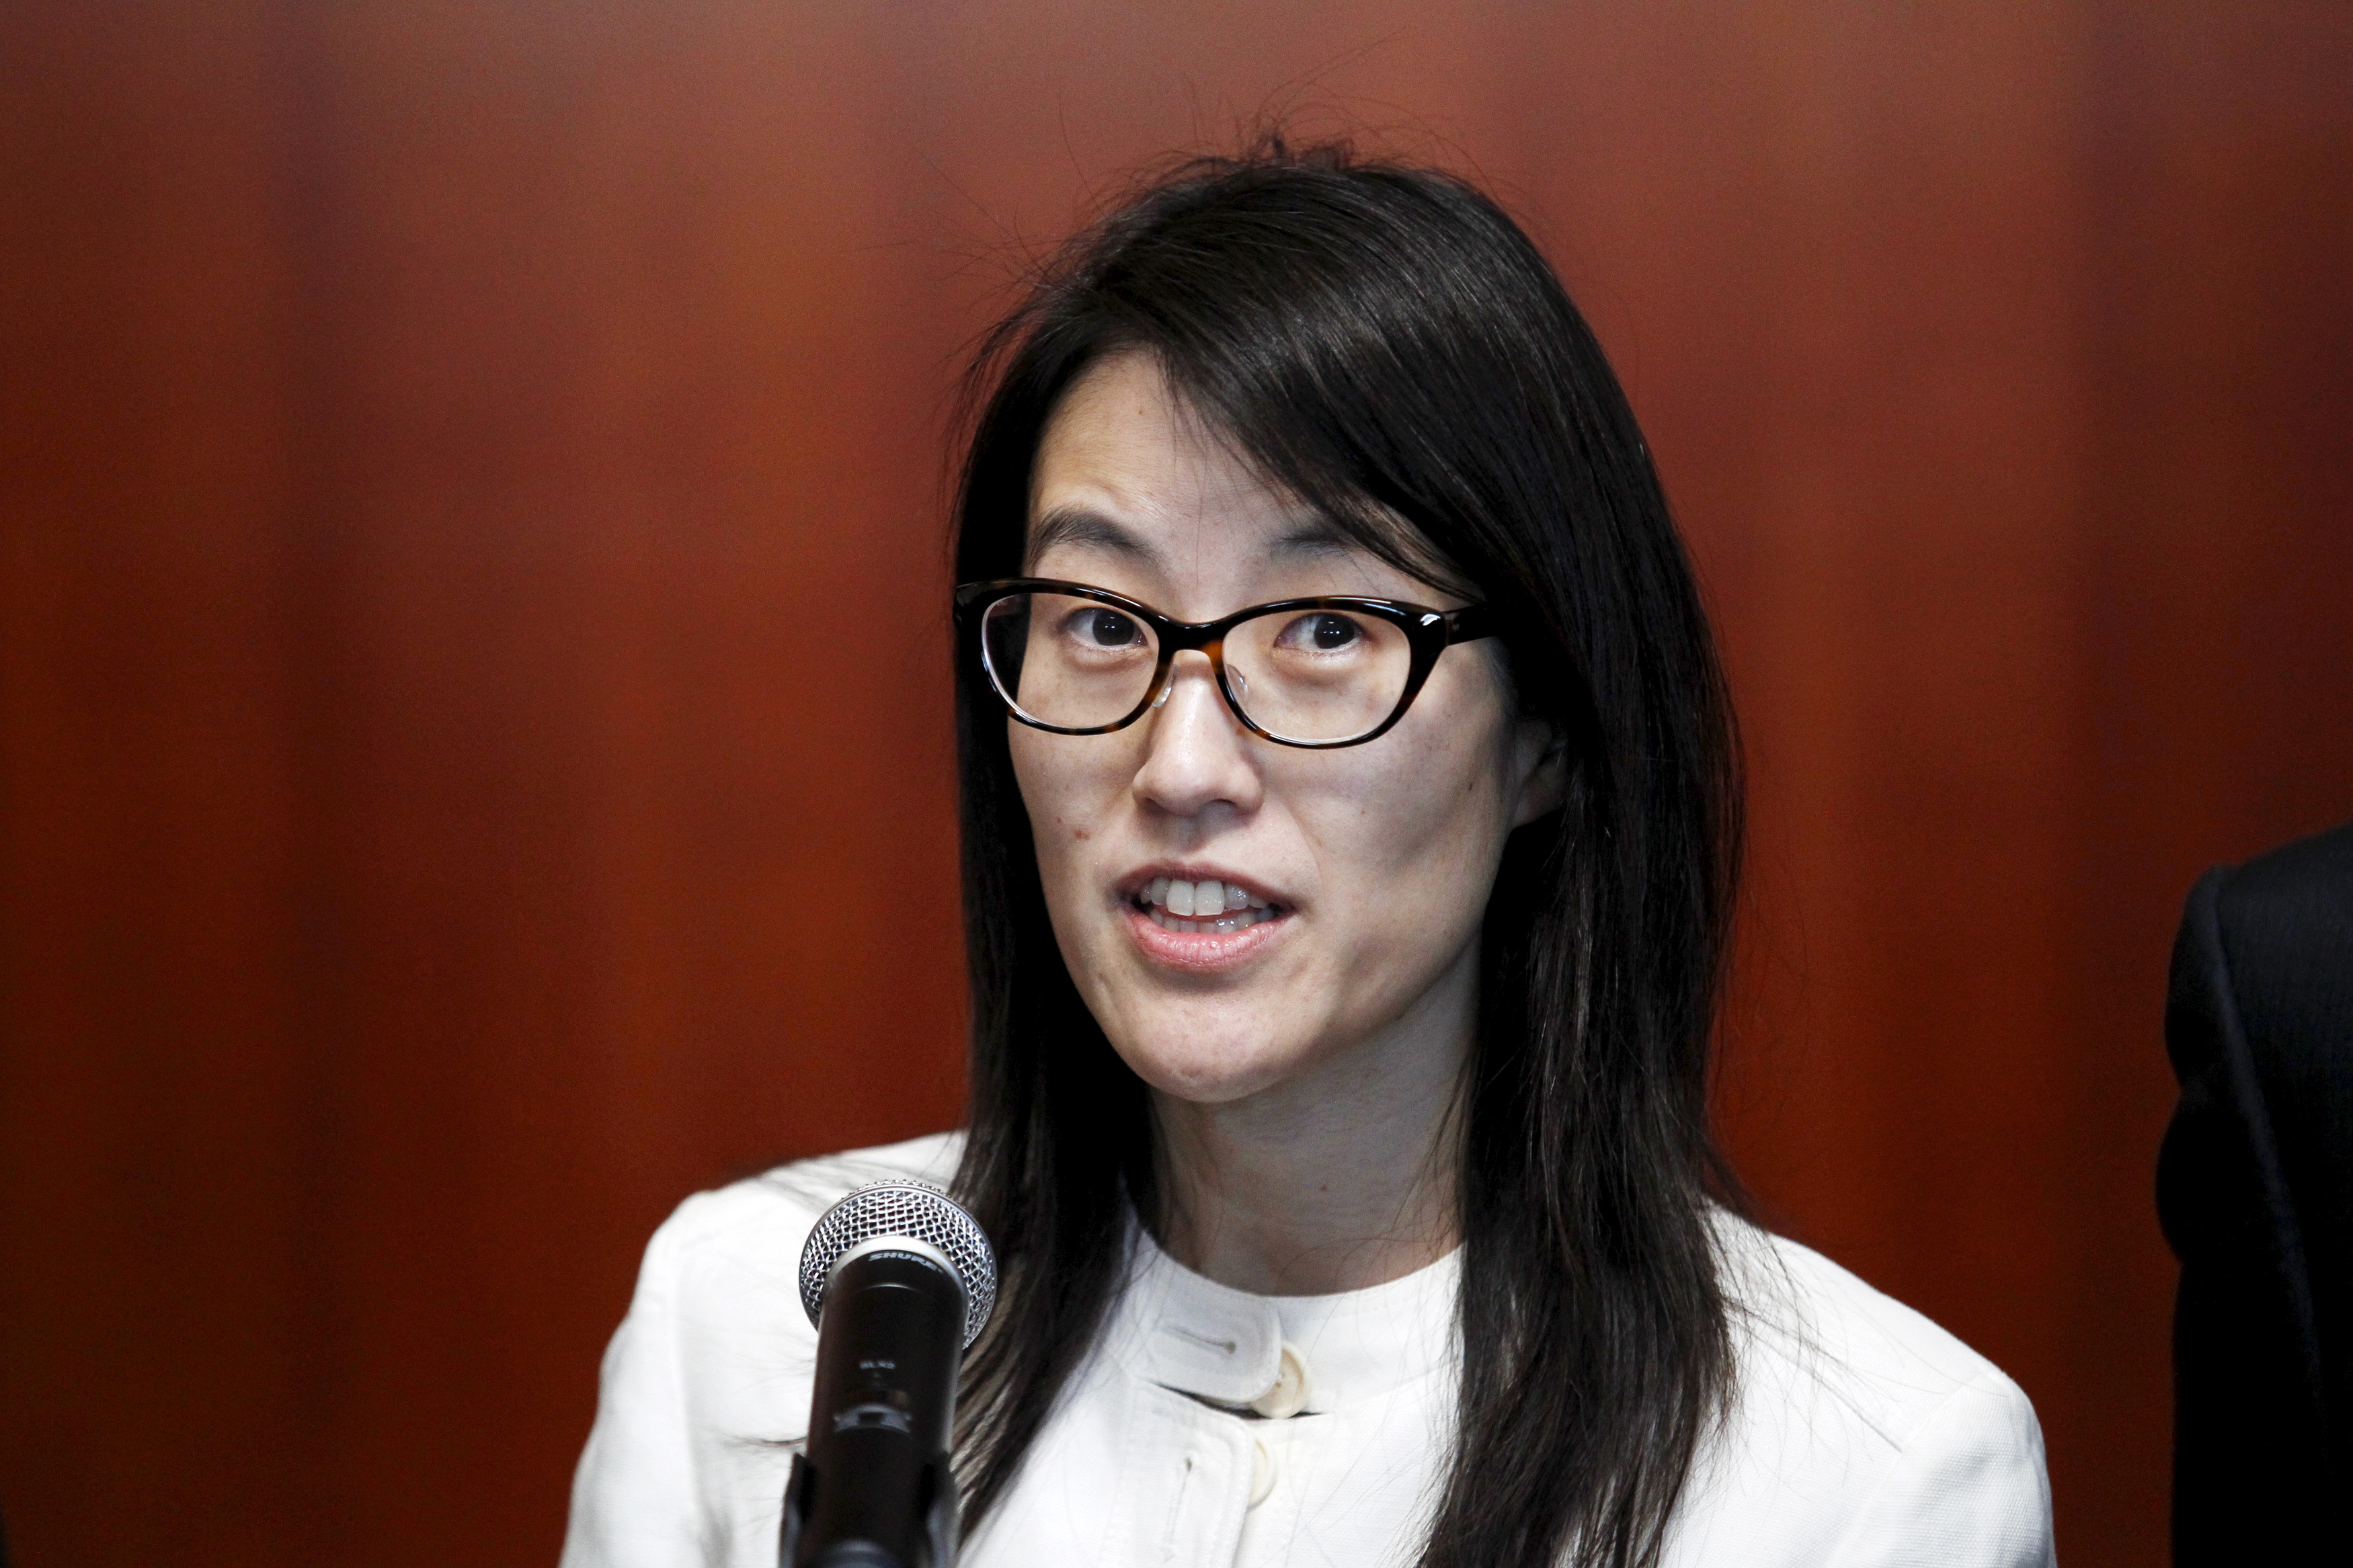 Ellen Pao speaking to the media after losing her high profile gender discrimination lawsuit against venture capital firm Kleiner, Perkins, Caufield and Byers in San Francisco, on March 27, 2015.